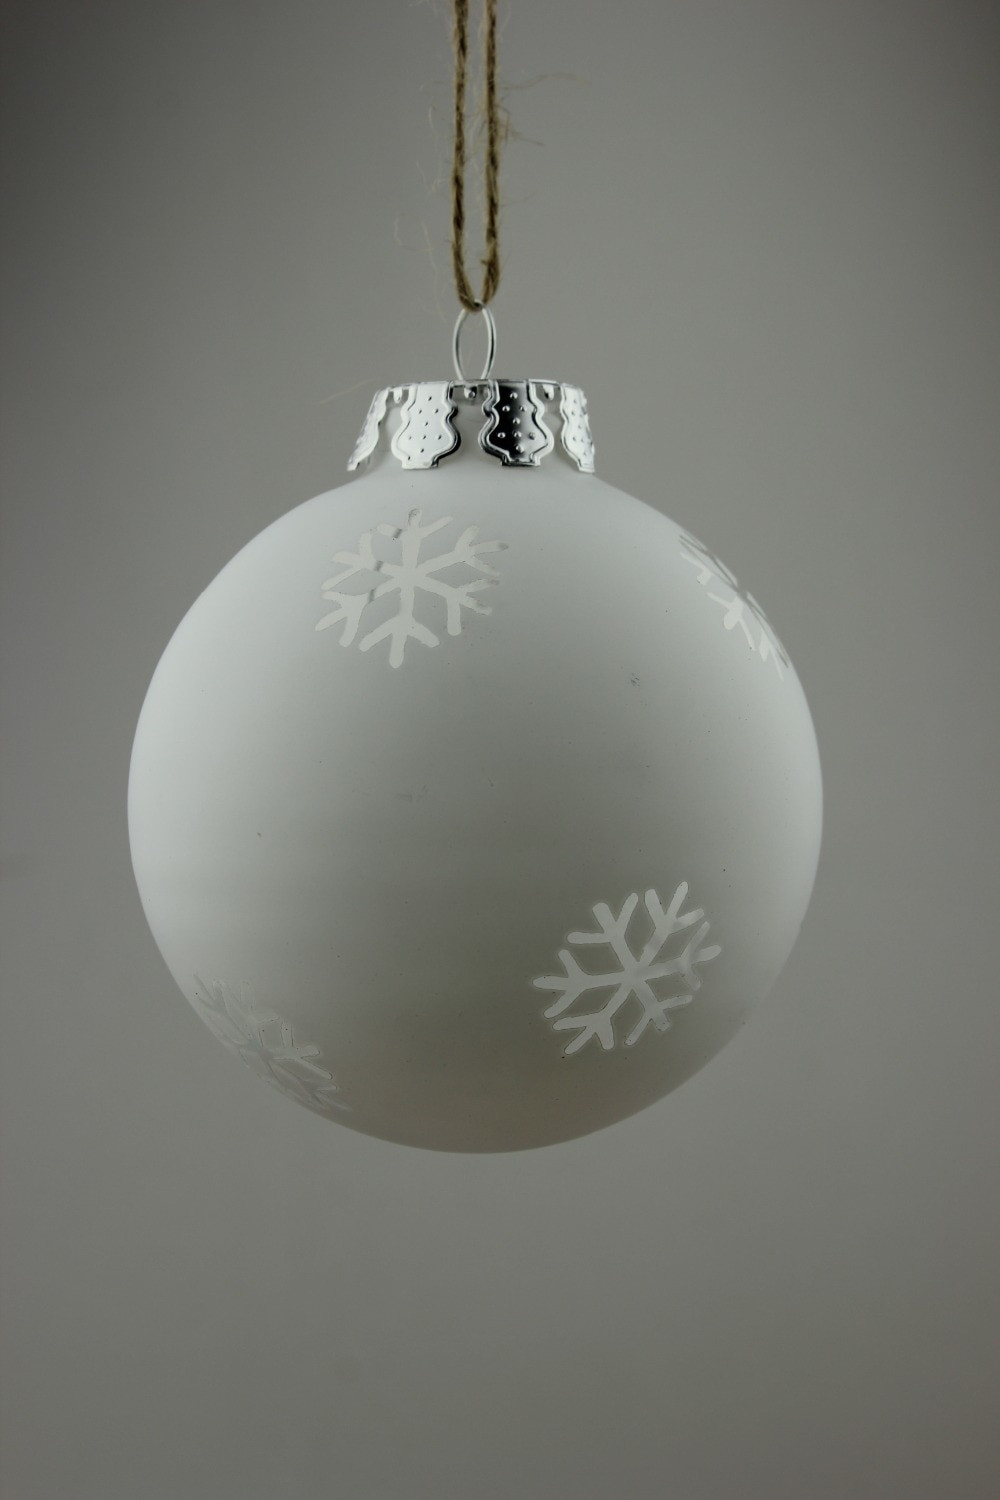 White Christmas ornaments Luxury Aliexpress Buy New Dia8cm Frosted White Christmas Of Attractive 44 Images White Christmas ornaments